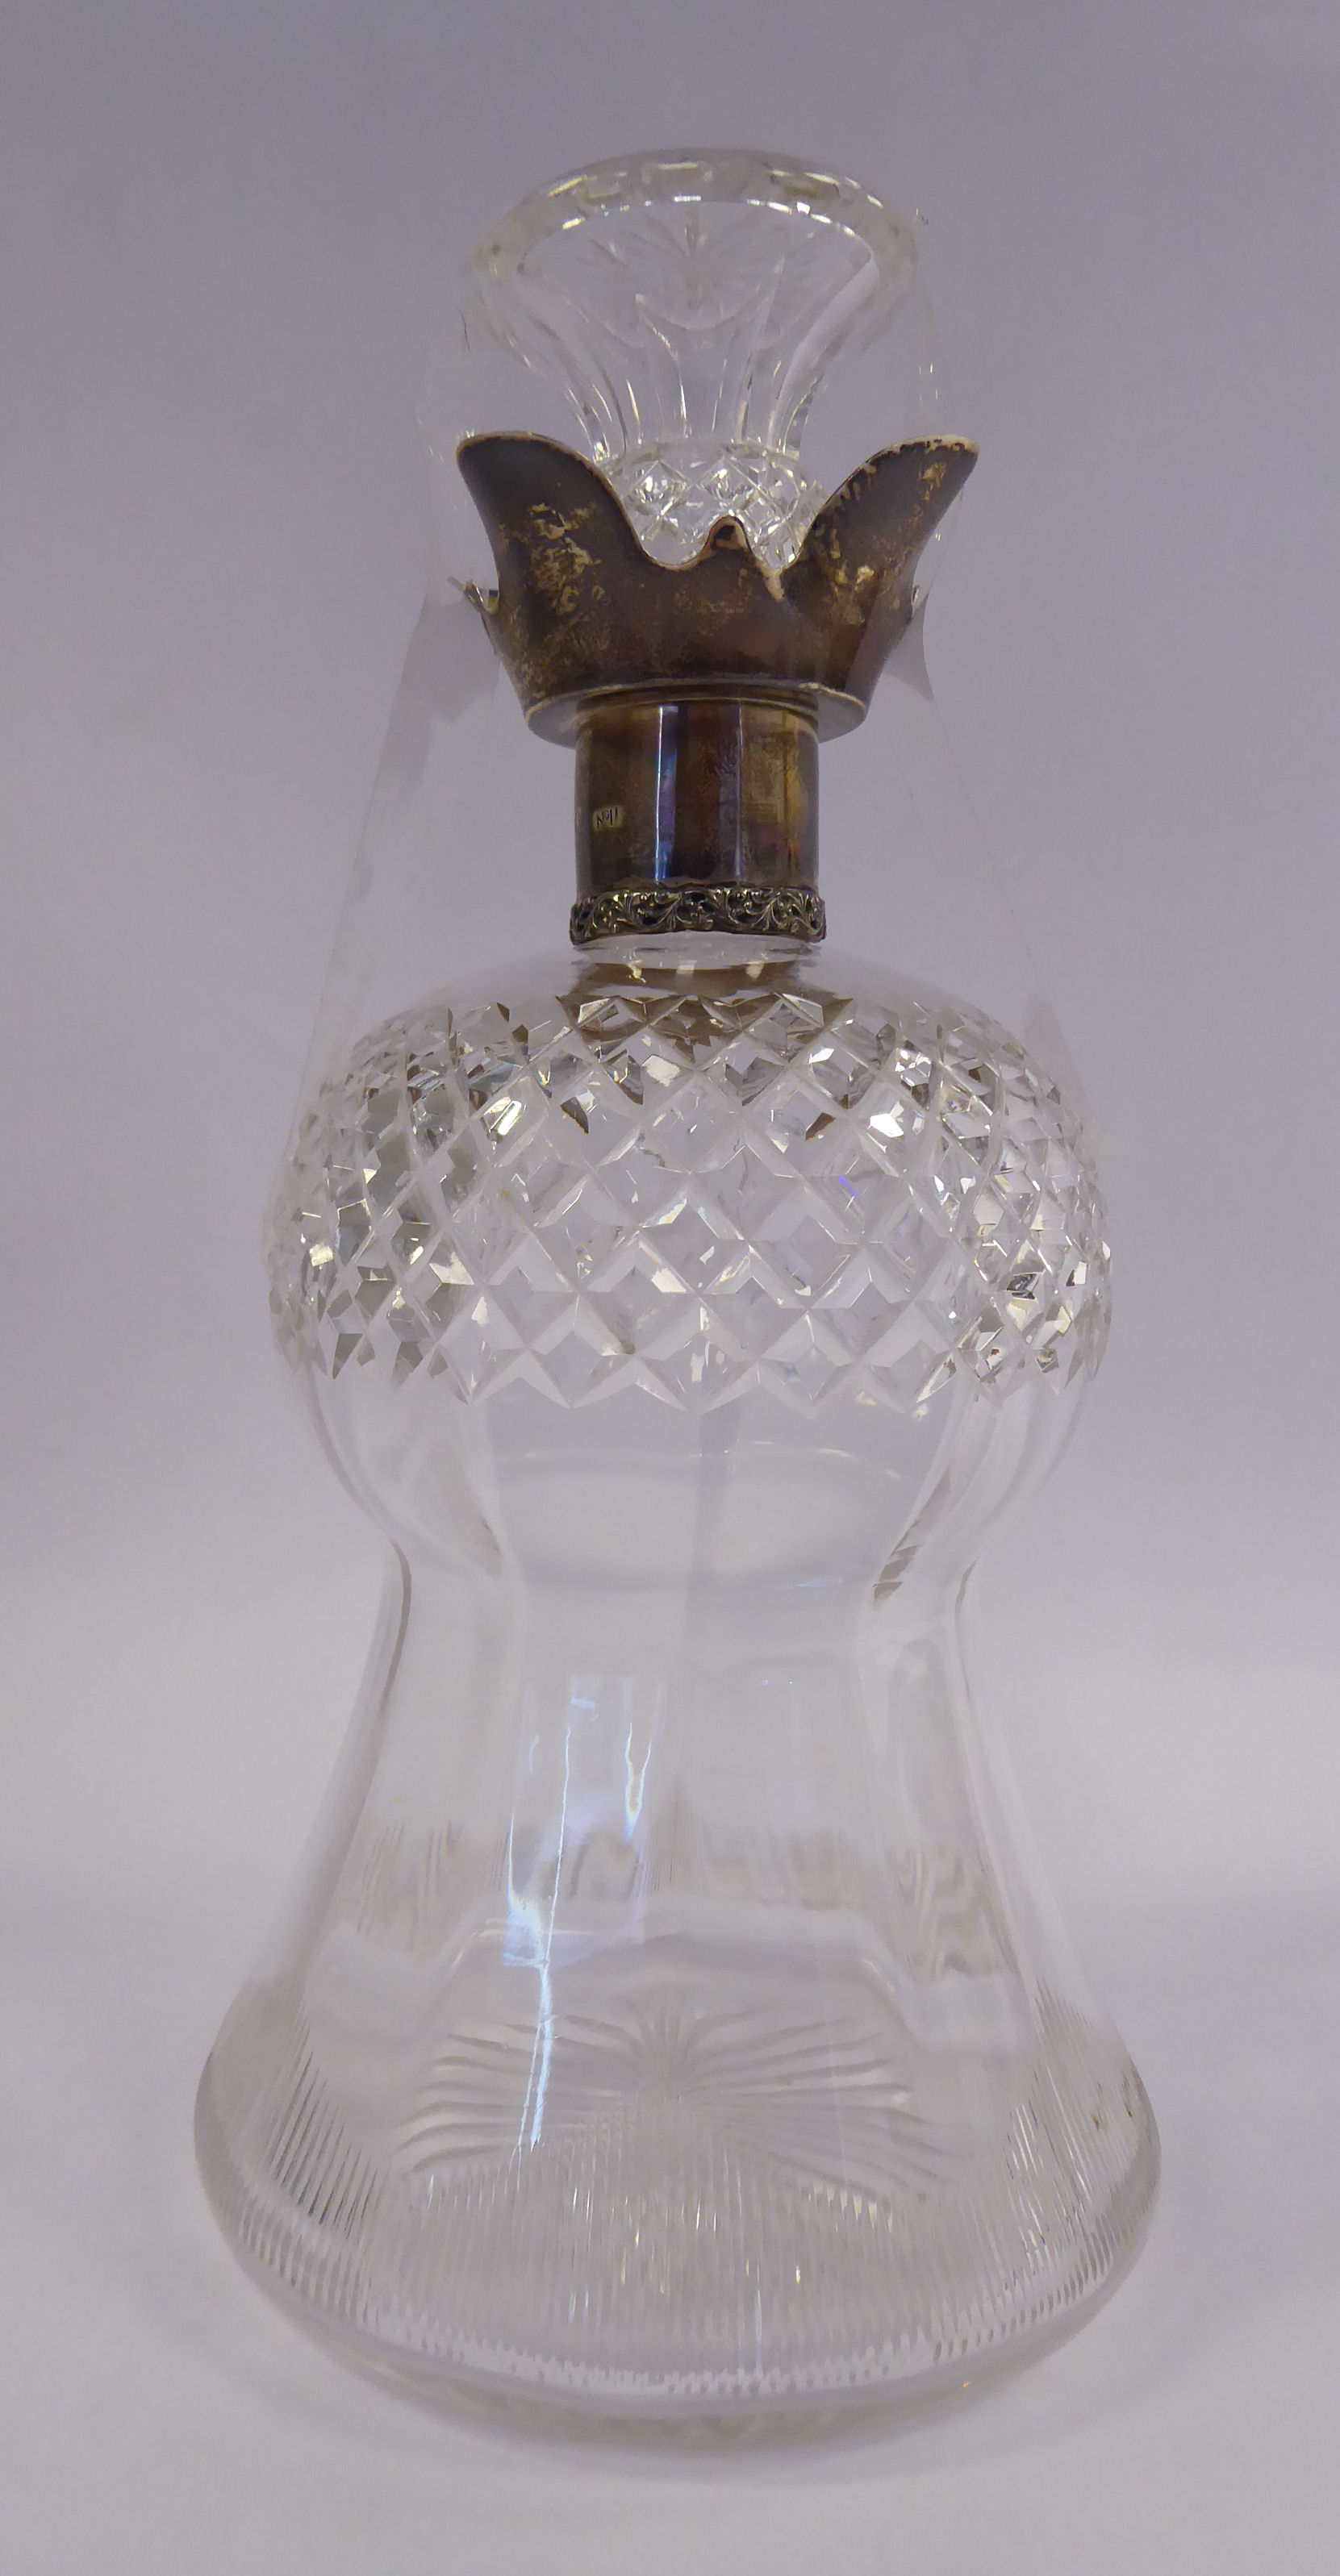 Lot 20 - An Edwardian thistle design glass decanter with slice and diamond cut ornament and an applied,